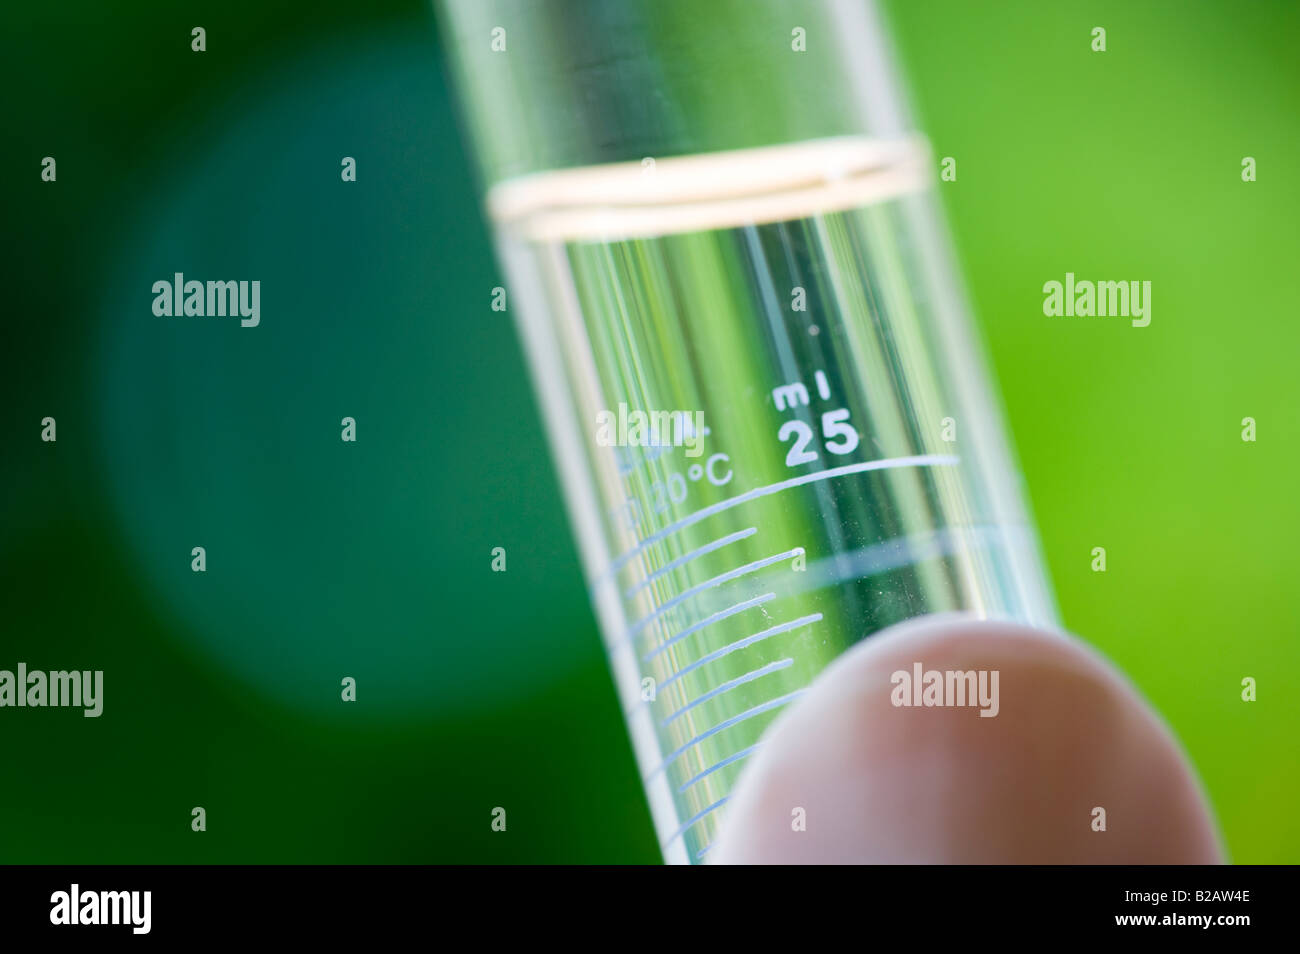 hand holding small test tube of clear liquid outdoors - Stock Image